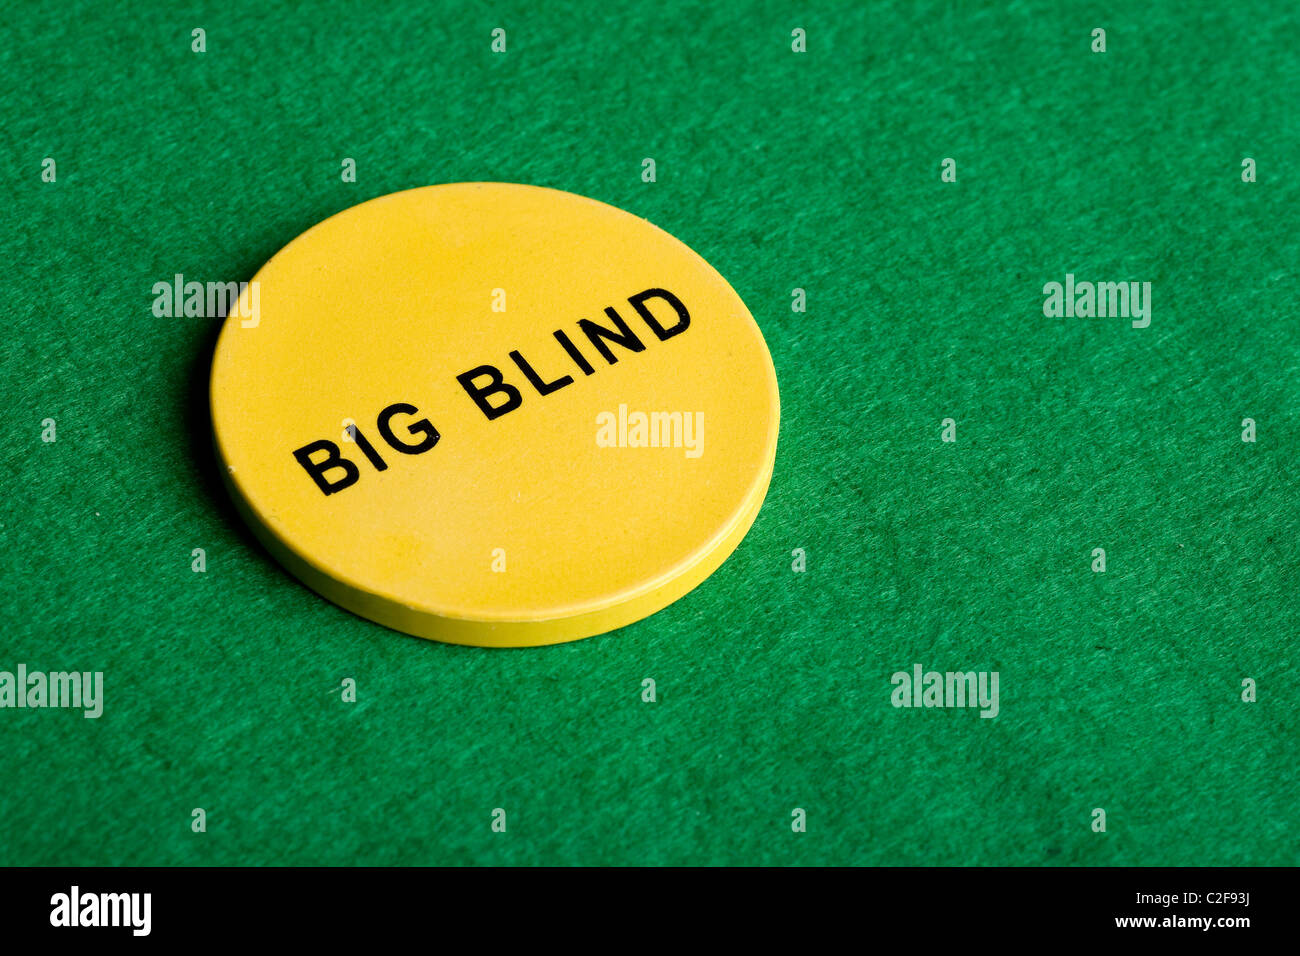 A Big Blind Chip For Poker Stock Photo 35986486 Alamy